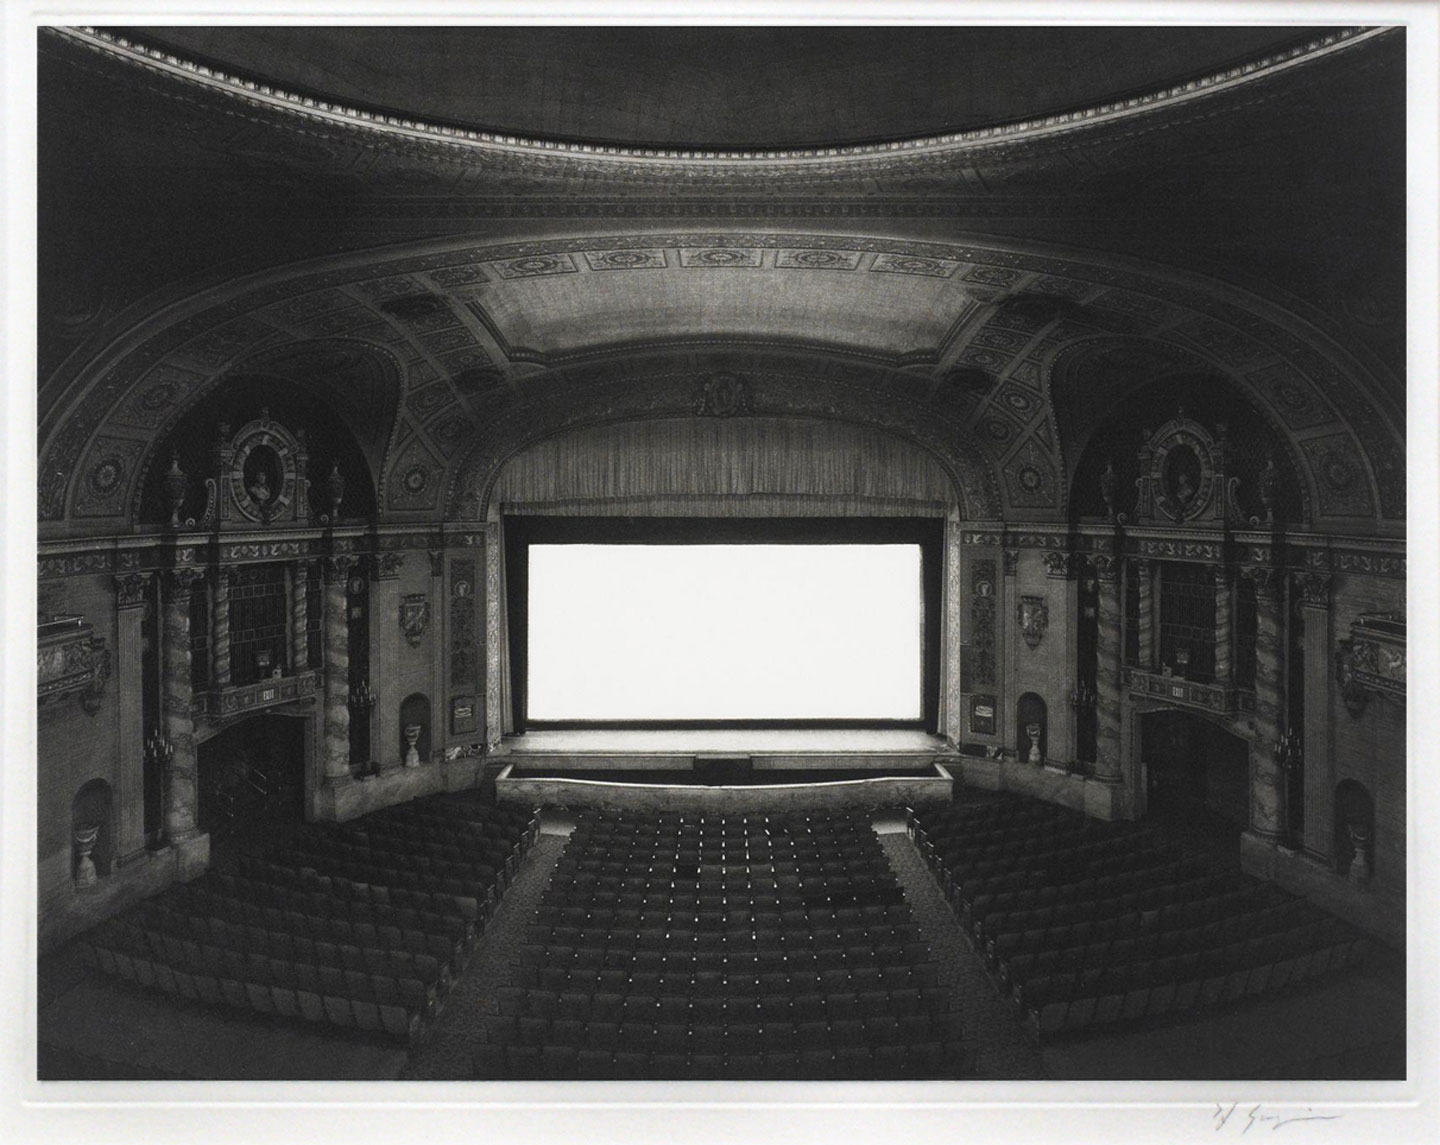 Hiroshi Sugimoto: Theaters, Limited Edition (with Photogravure Print)